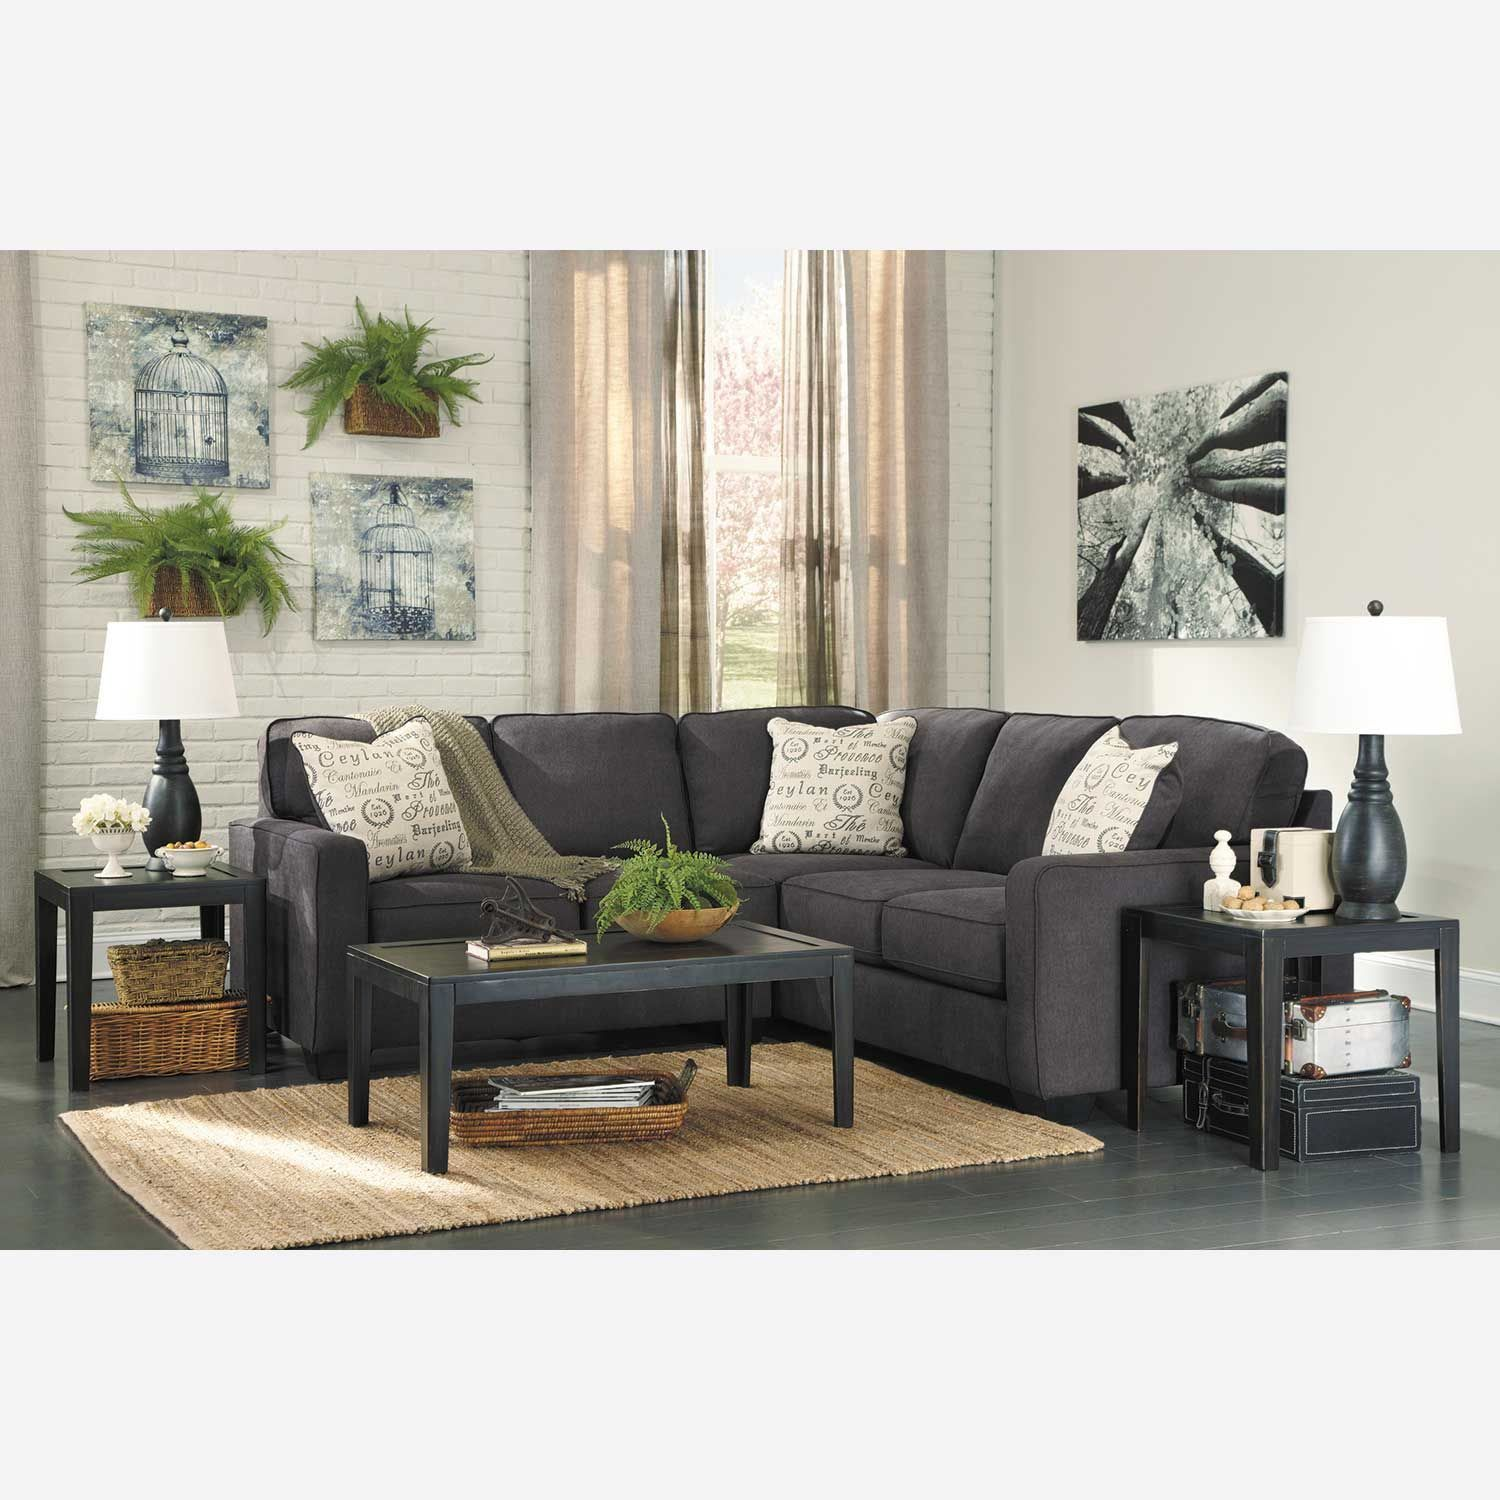 Best 2Pc Charcoal Sectional With Raf Sofa Charcoal Sectional 640 x 480